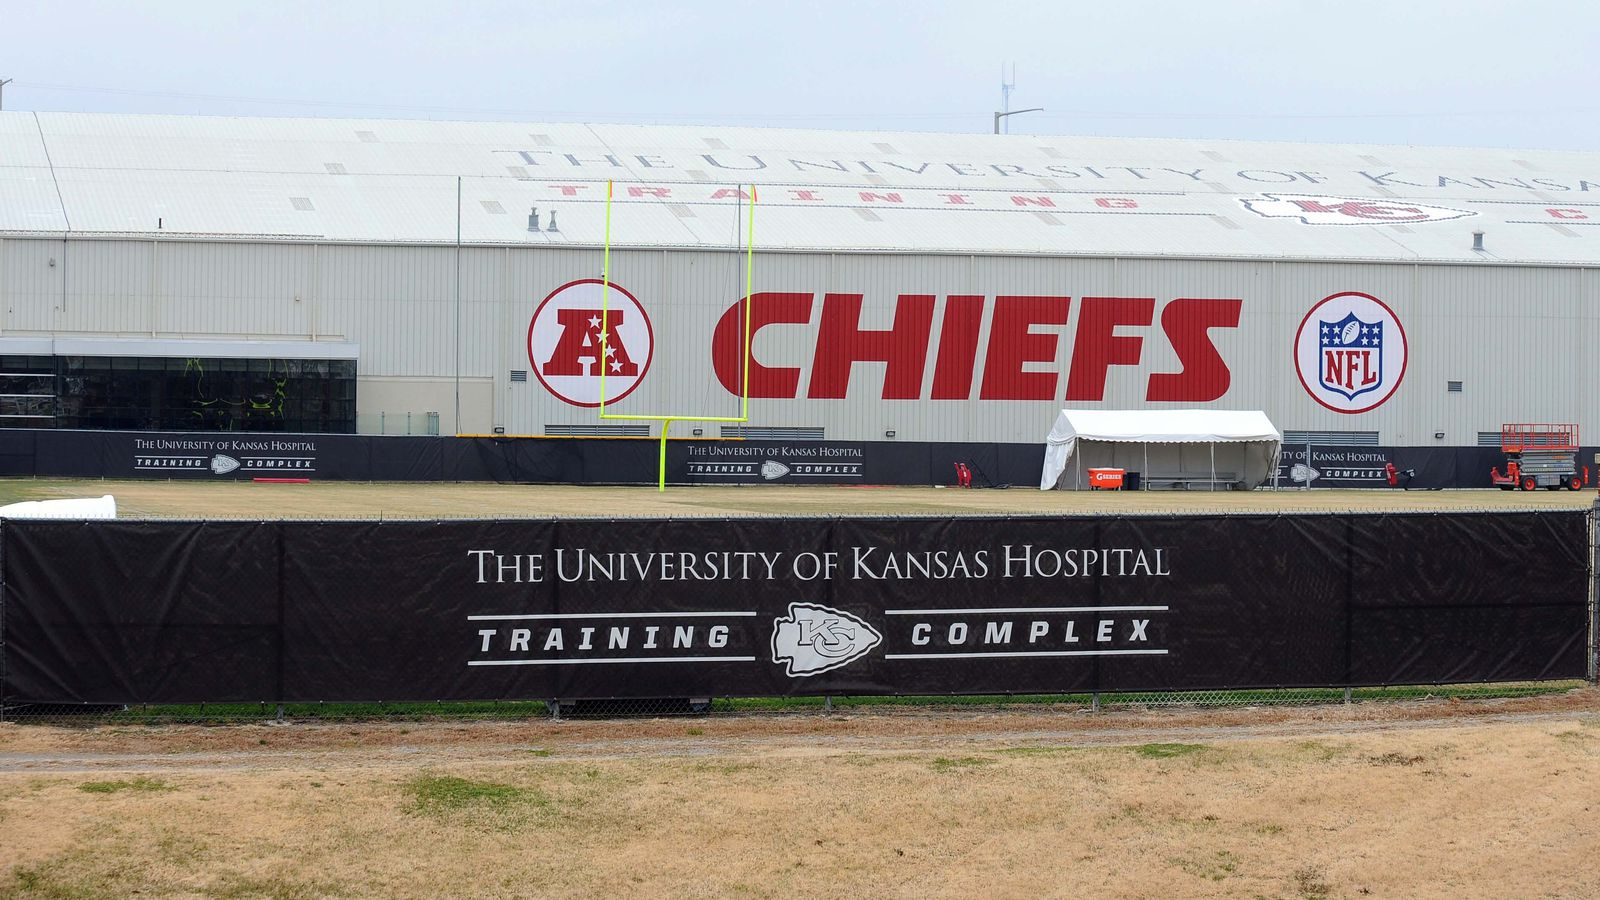 Kansas City Chiefs Offseason Schedule Starts On April 21